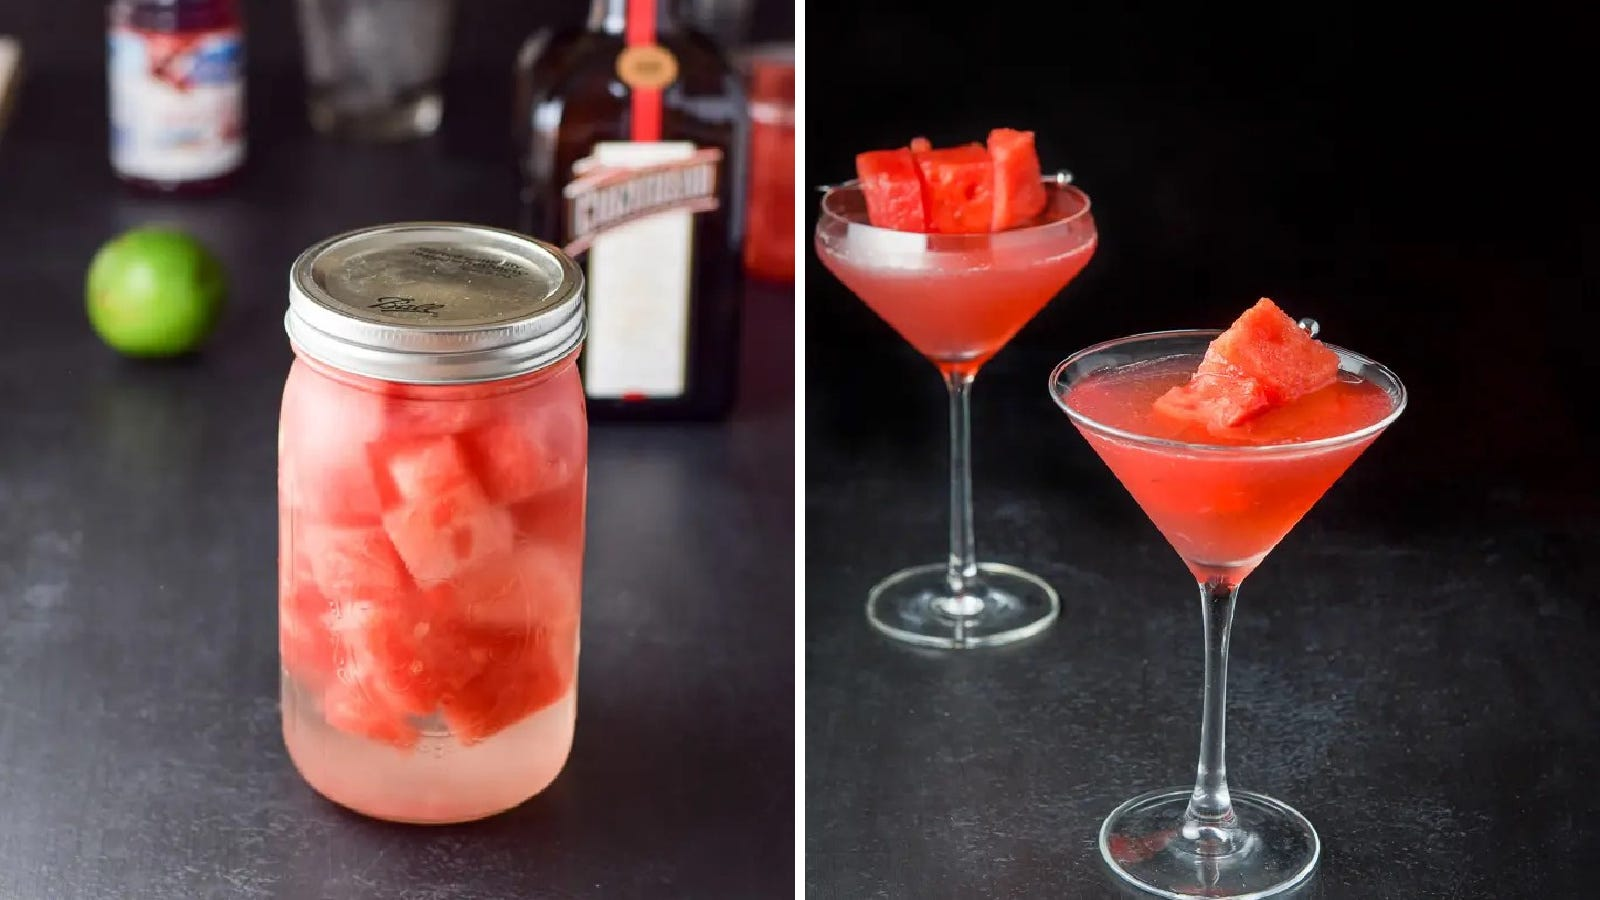 Two images of ingredients used to make watermelon cosmos including the left image which features infused watermelon vodka, and the right image is of two watermelon cosmos.